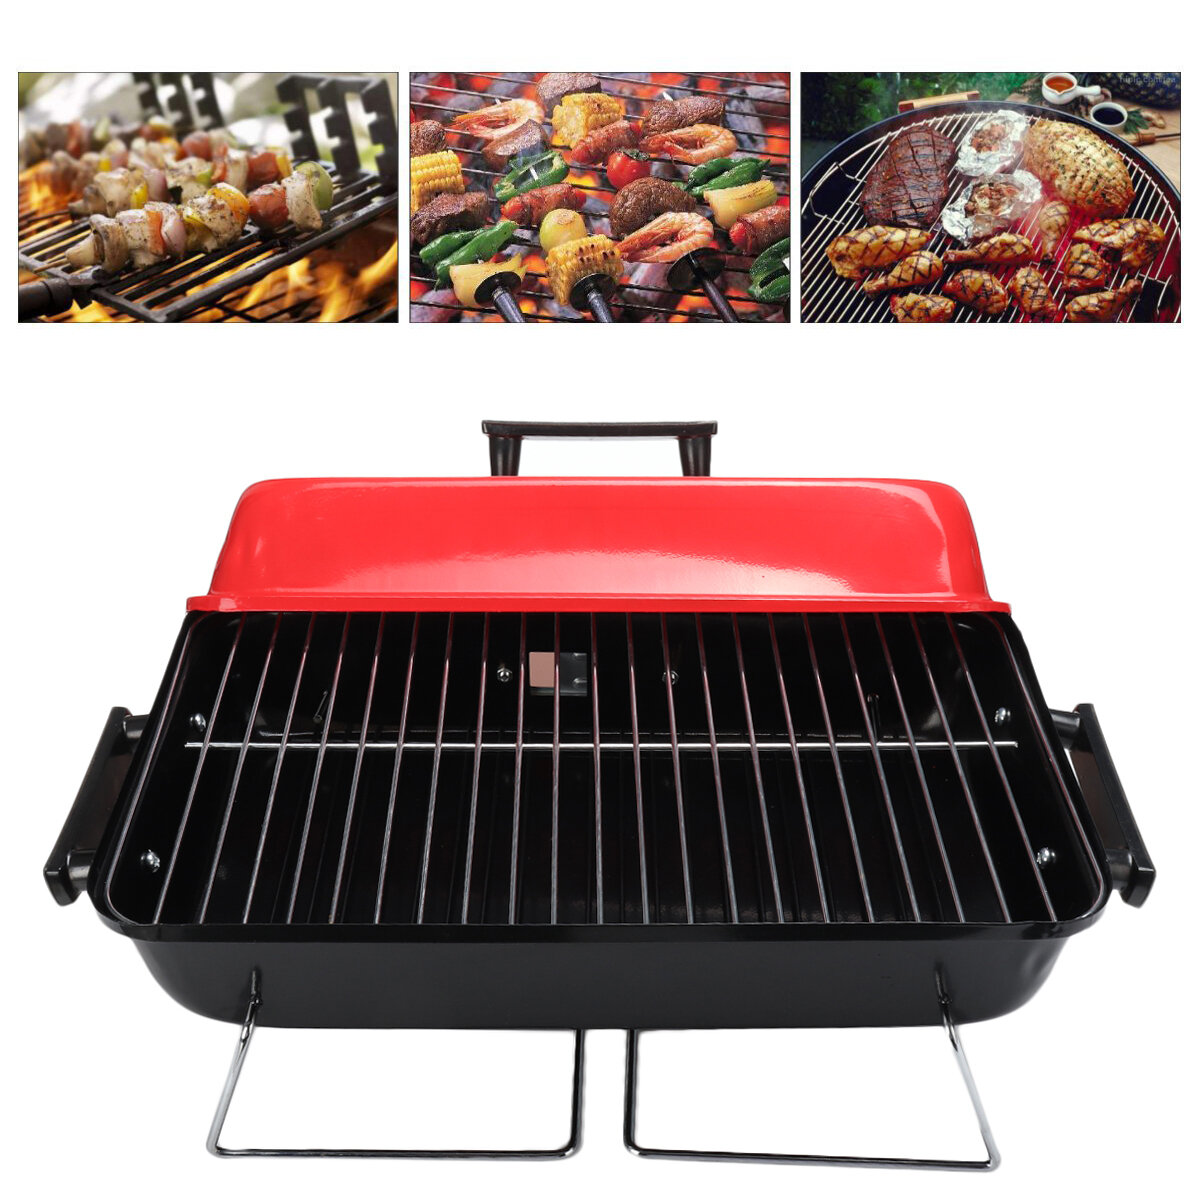 Image of Portable Folding BBQ Grill Barbecue Charcoal Grills Wire Meshes Tools For Outdoor Camping Cooking Picnics Hiking